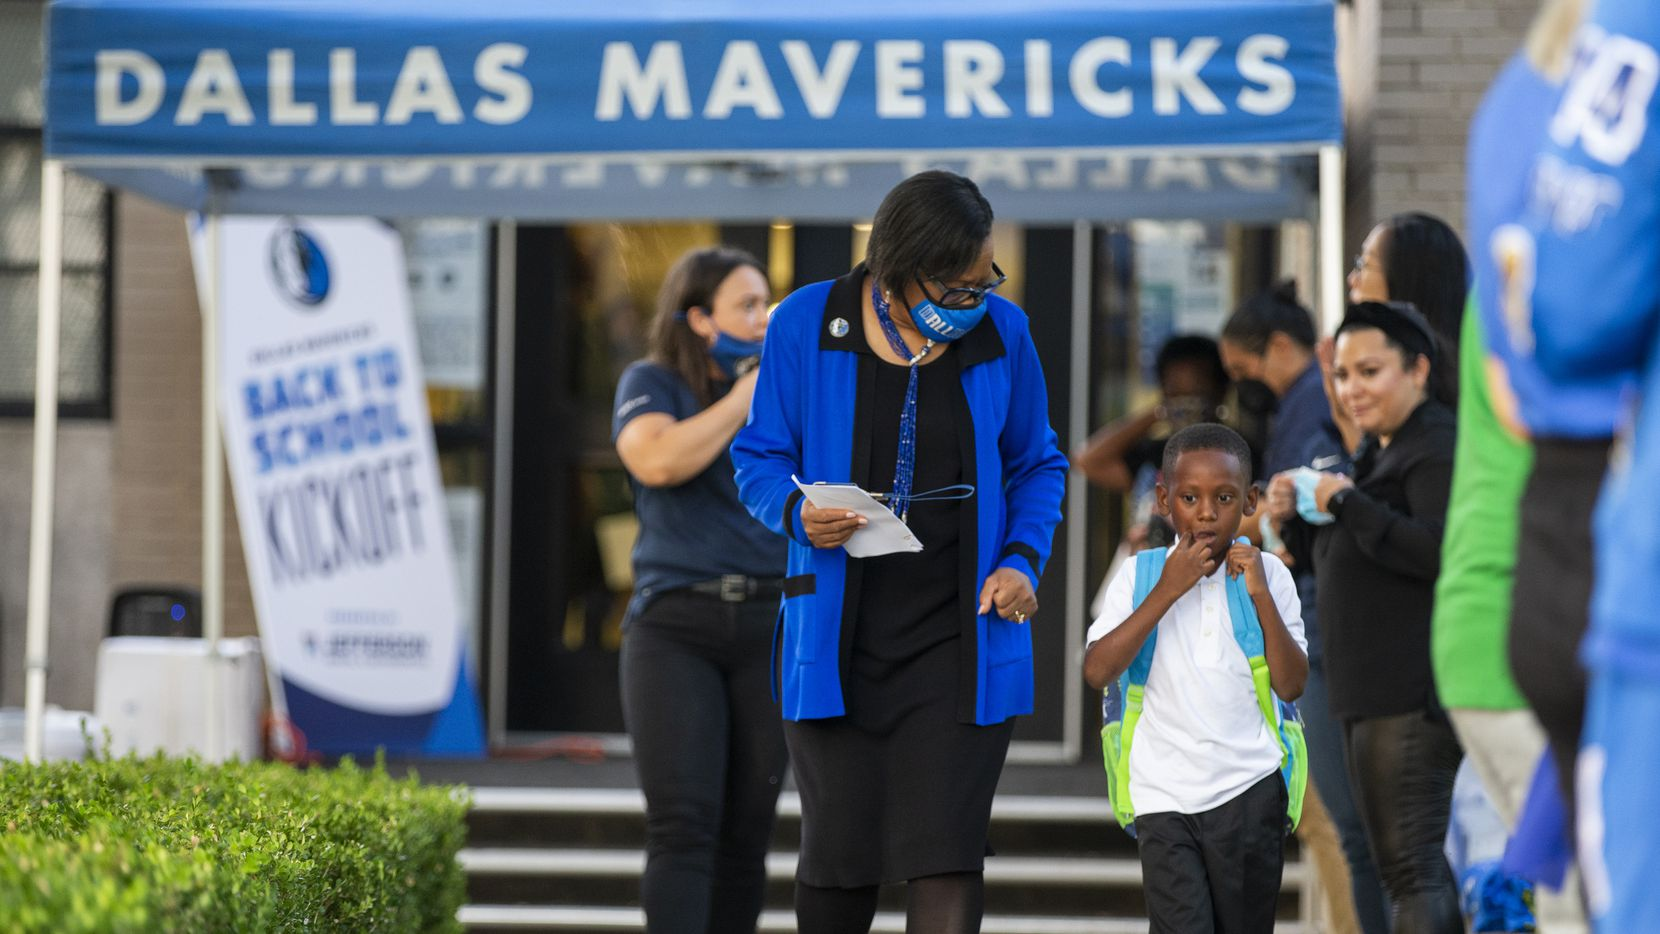 Dallas Mavericks CEO Cynt Marshall welcomes first-grader Gzia Williams, 6, to the first day of school Monday at Adelle Turner Elementary School in Dallas. (Brandon Wade/Special Contributor)